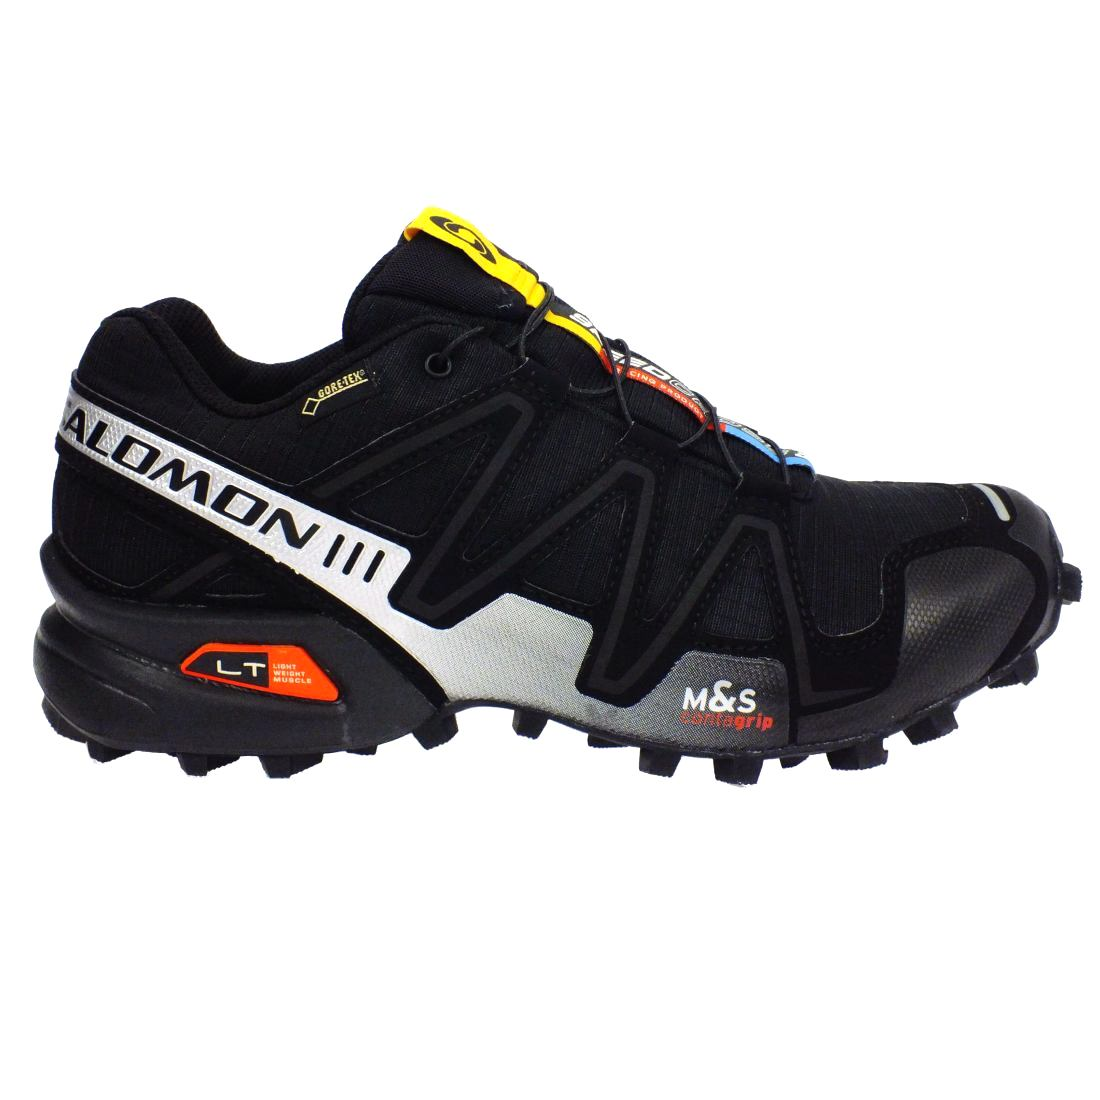 Salomon Speedcross 3 Gtx Goretex